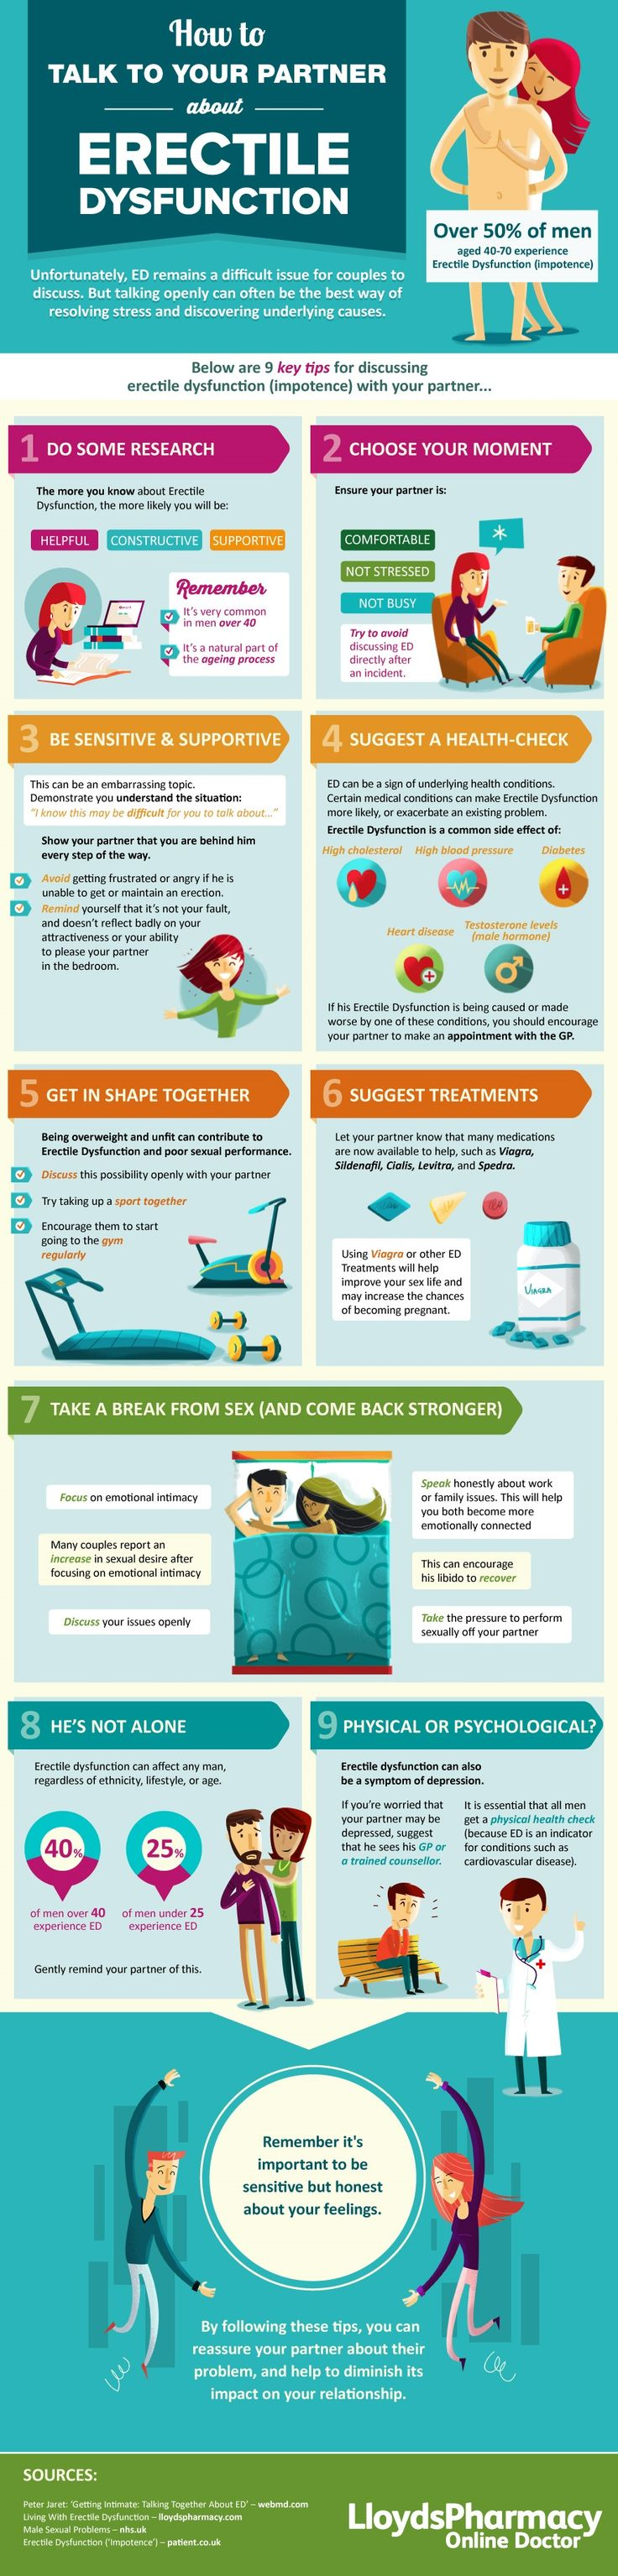 9 best sex info images on pinterest info graphics infographic and how to talk to your partner about erectile dysfunction infographic fandeluxe Images